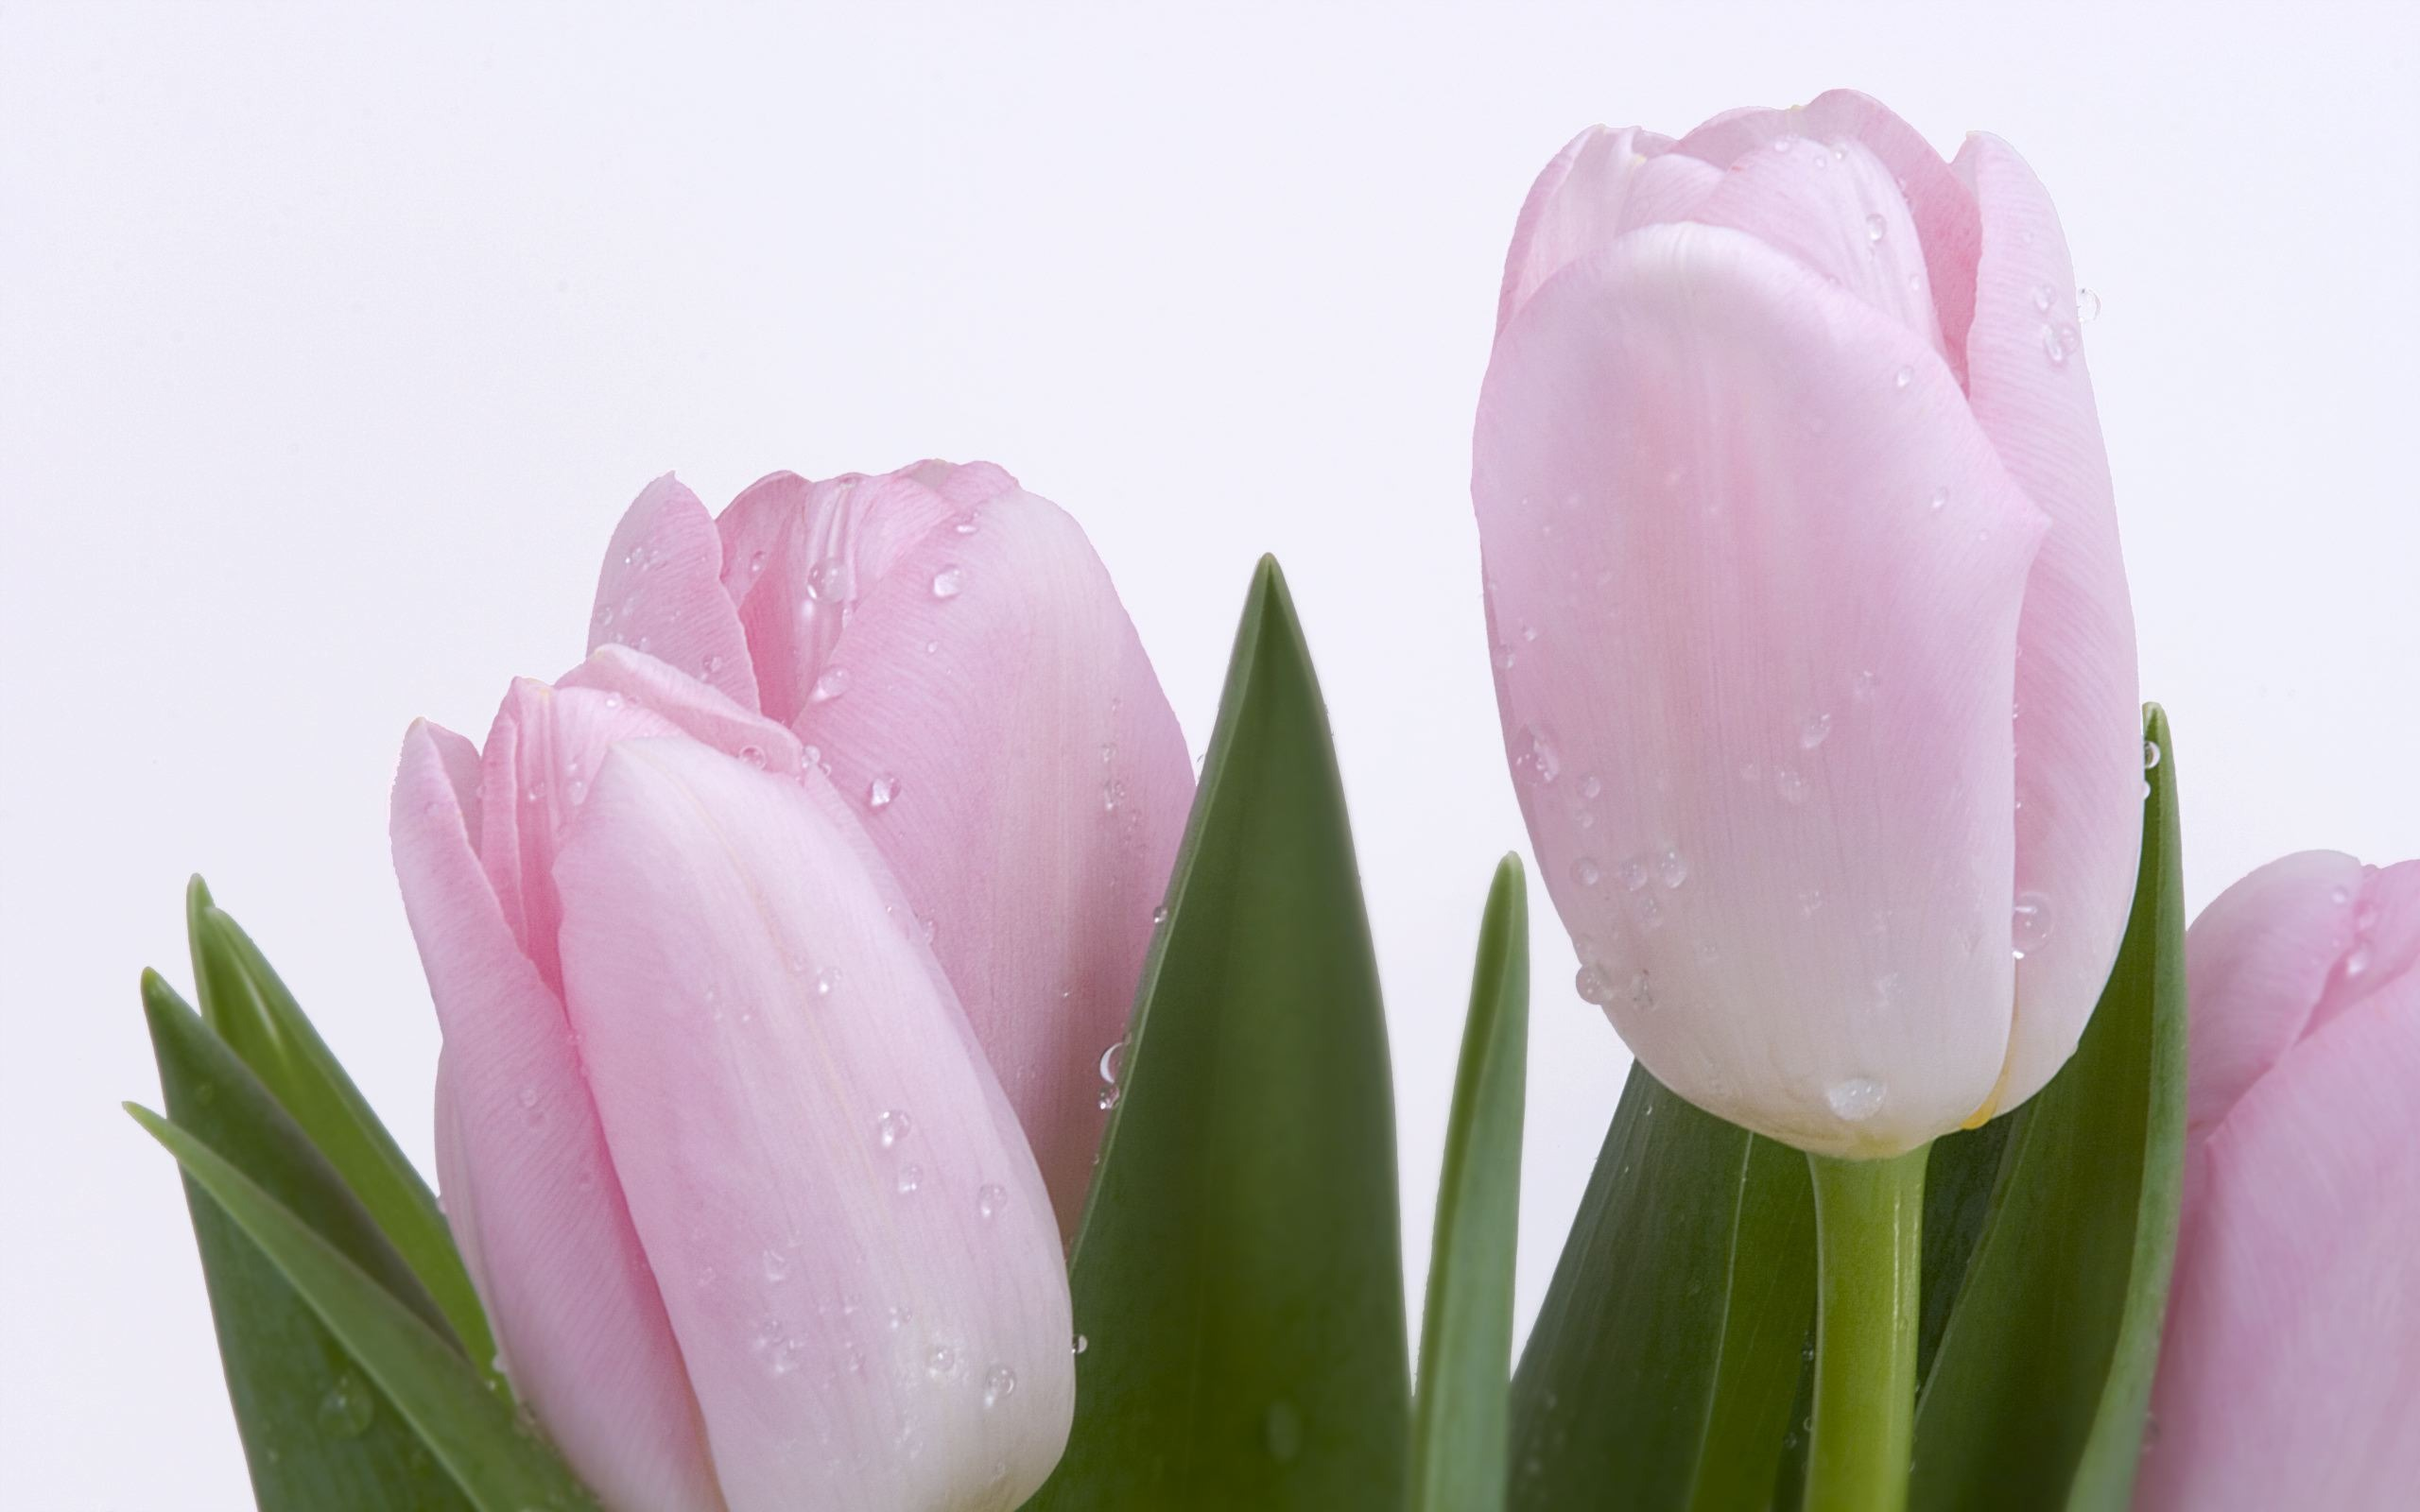 pink fresh tulips wallpaper flowers nature wallpapers in jpg format